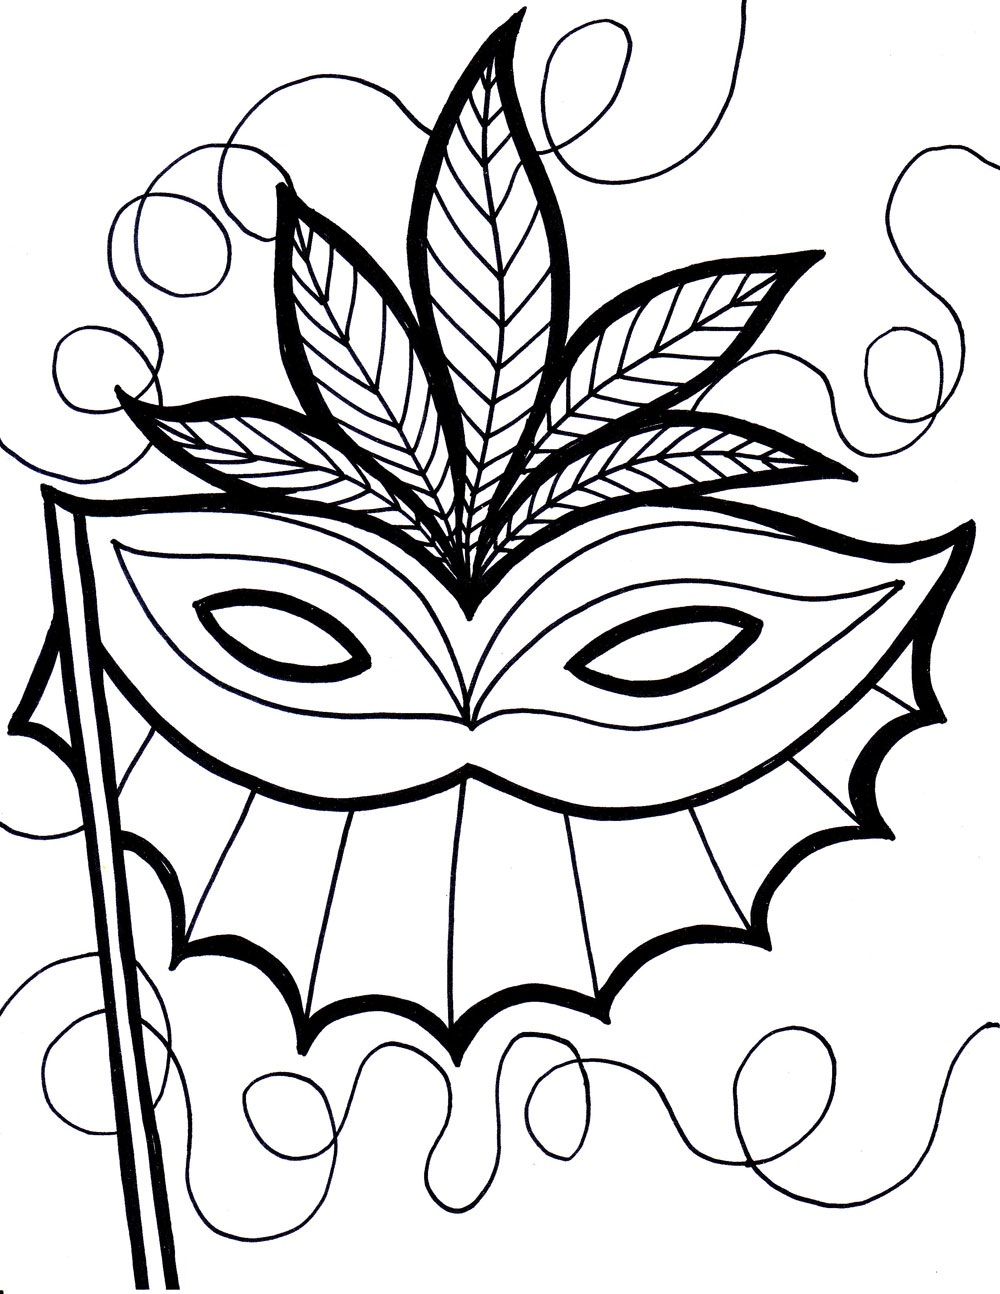 Free coloring pages of rabbit face mask for Coloring pages masks